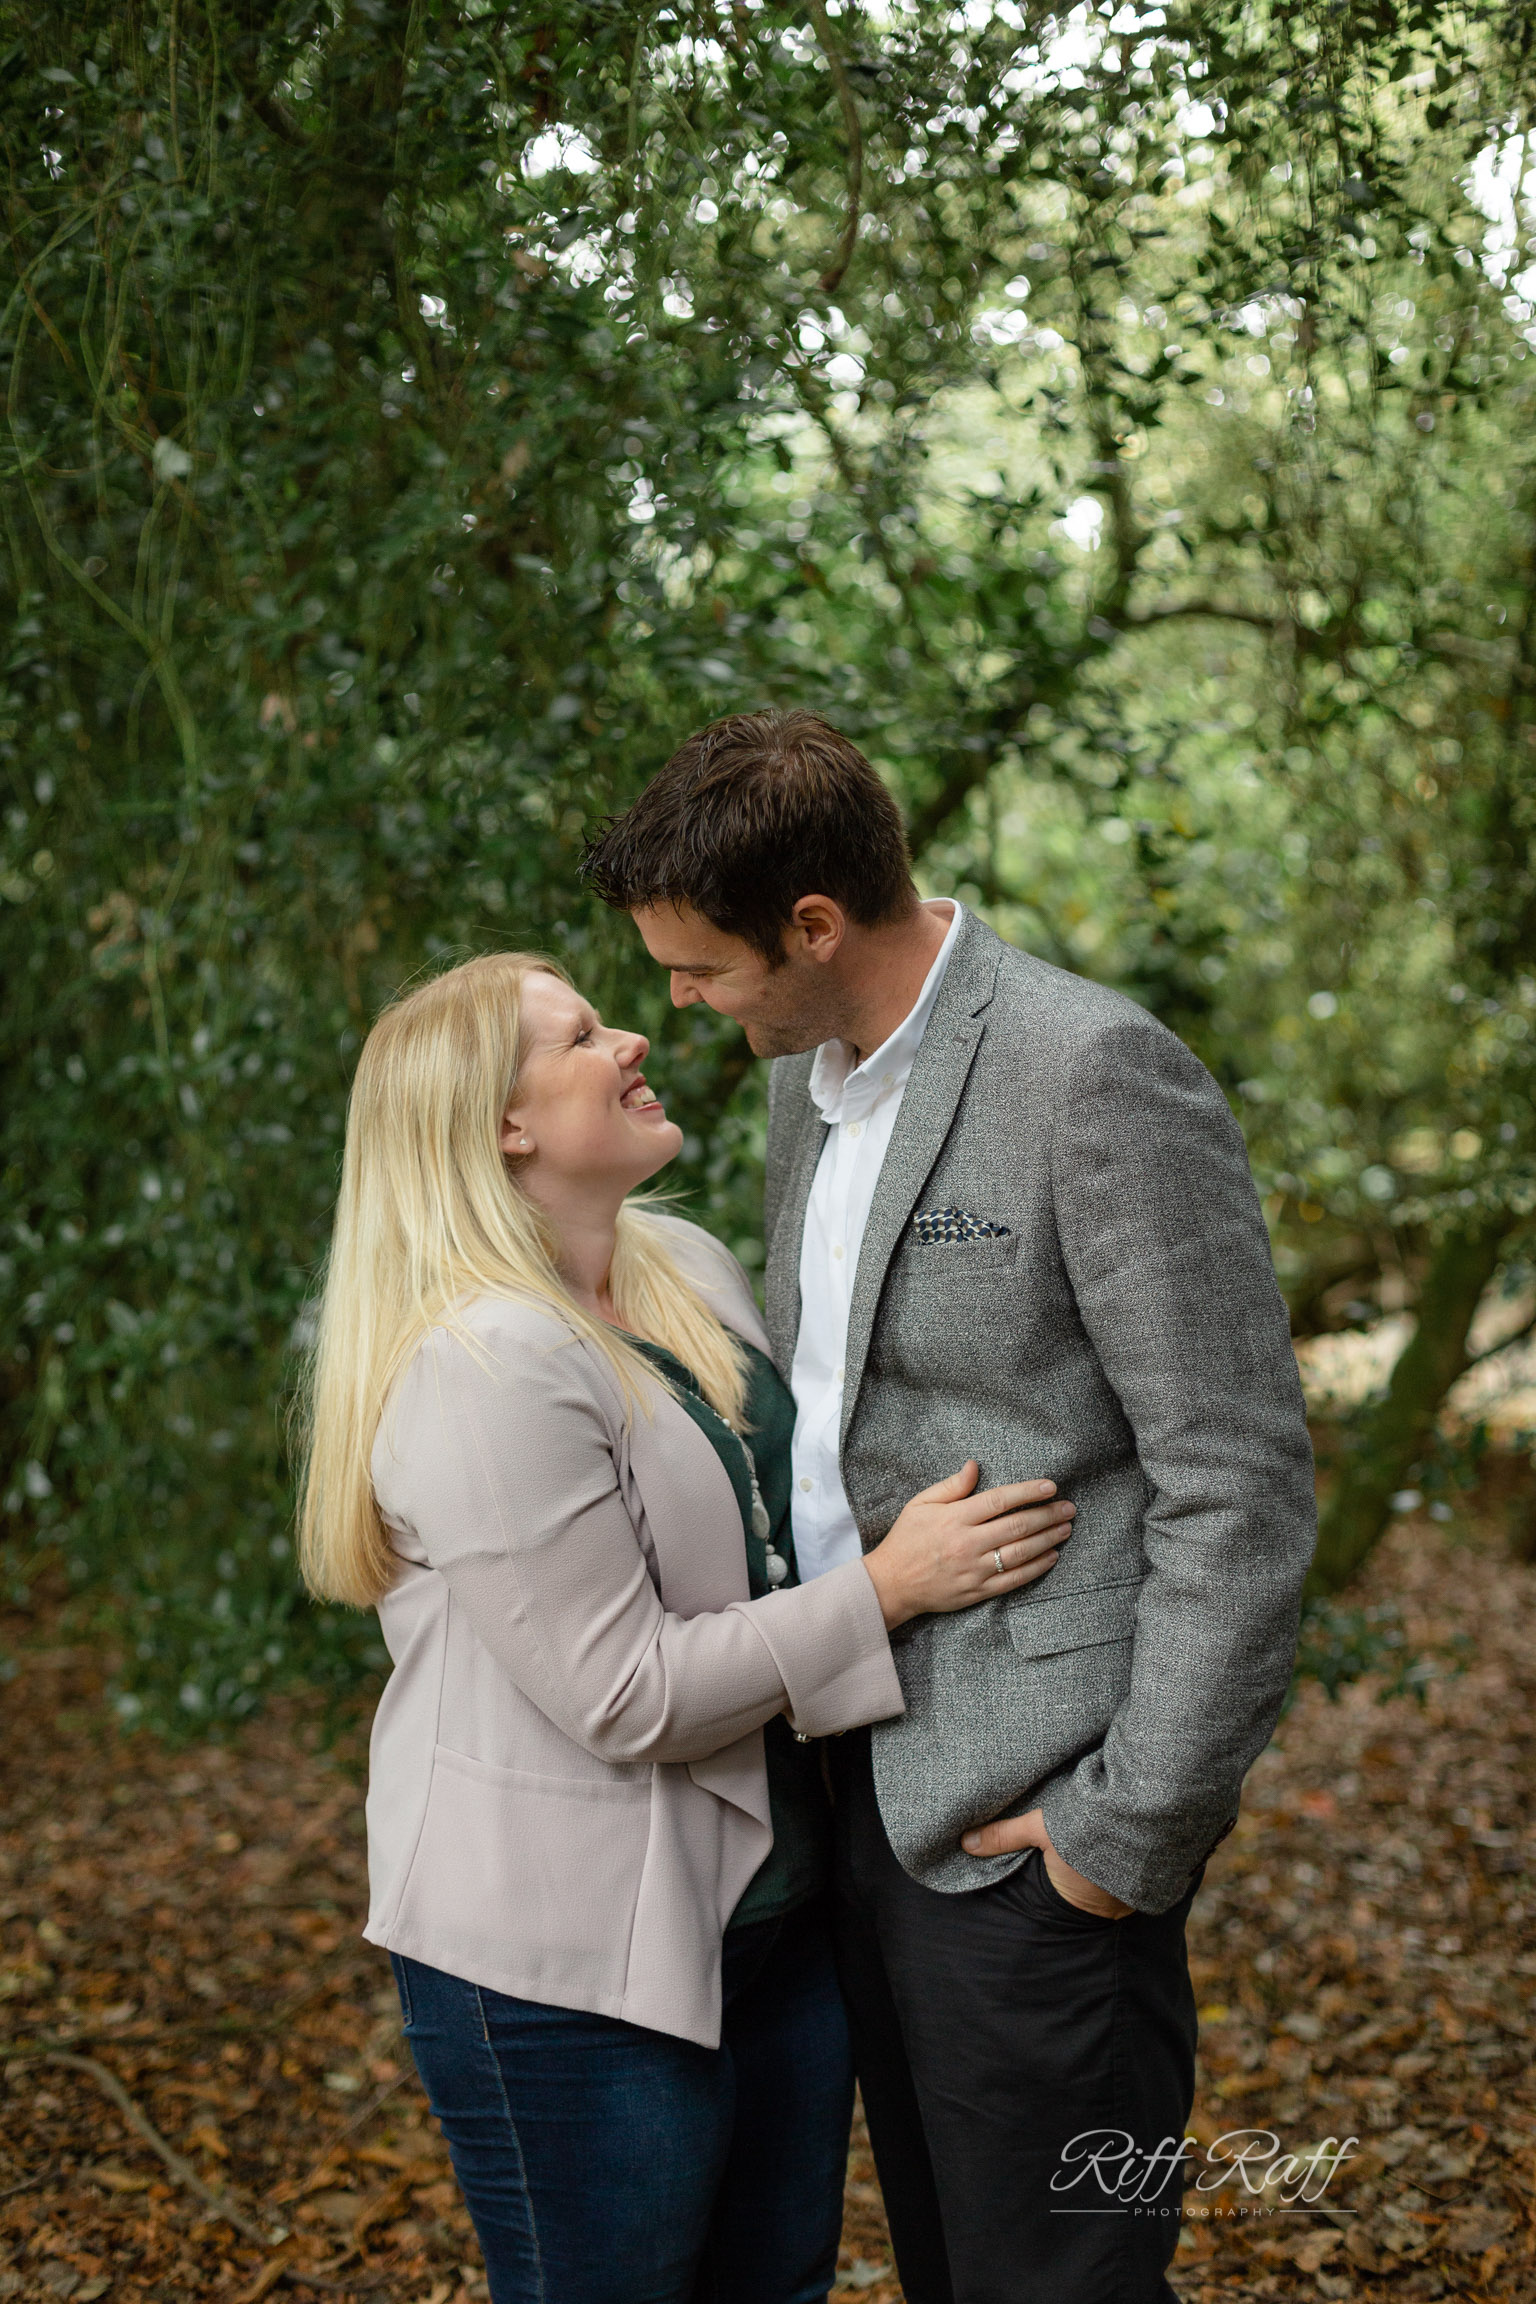 Fiona & Adam Engagement Shoot Blog-008.jpg